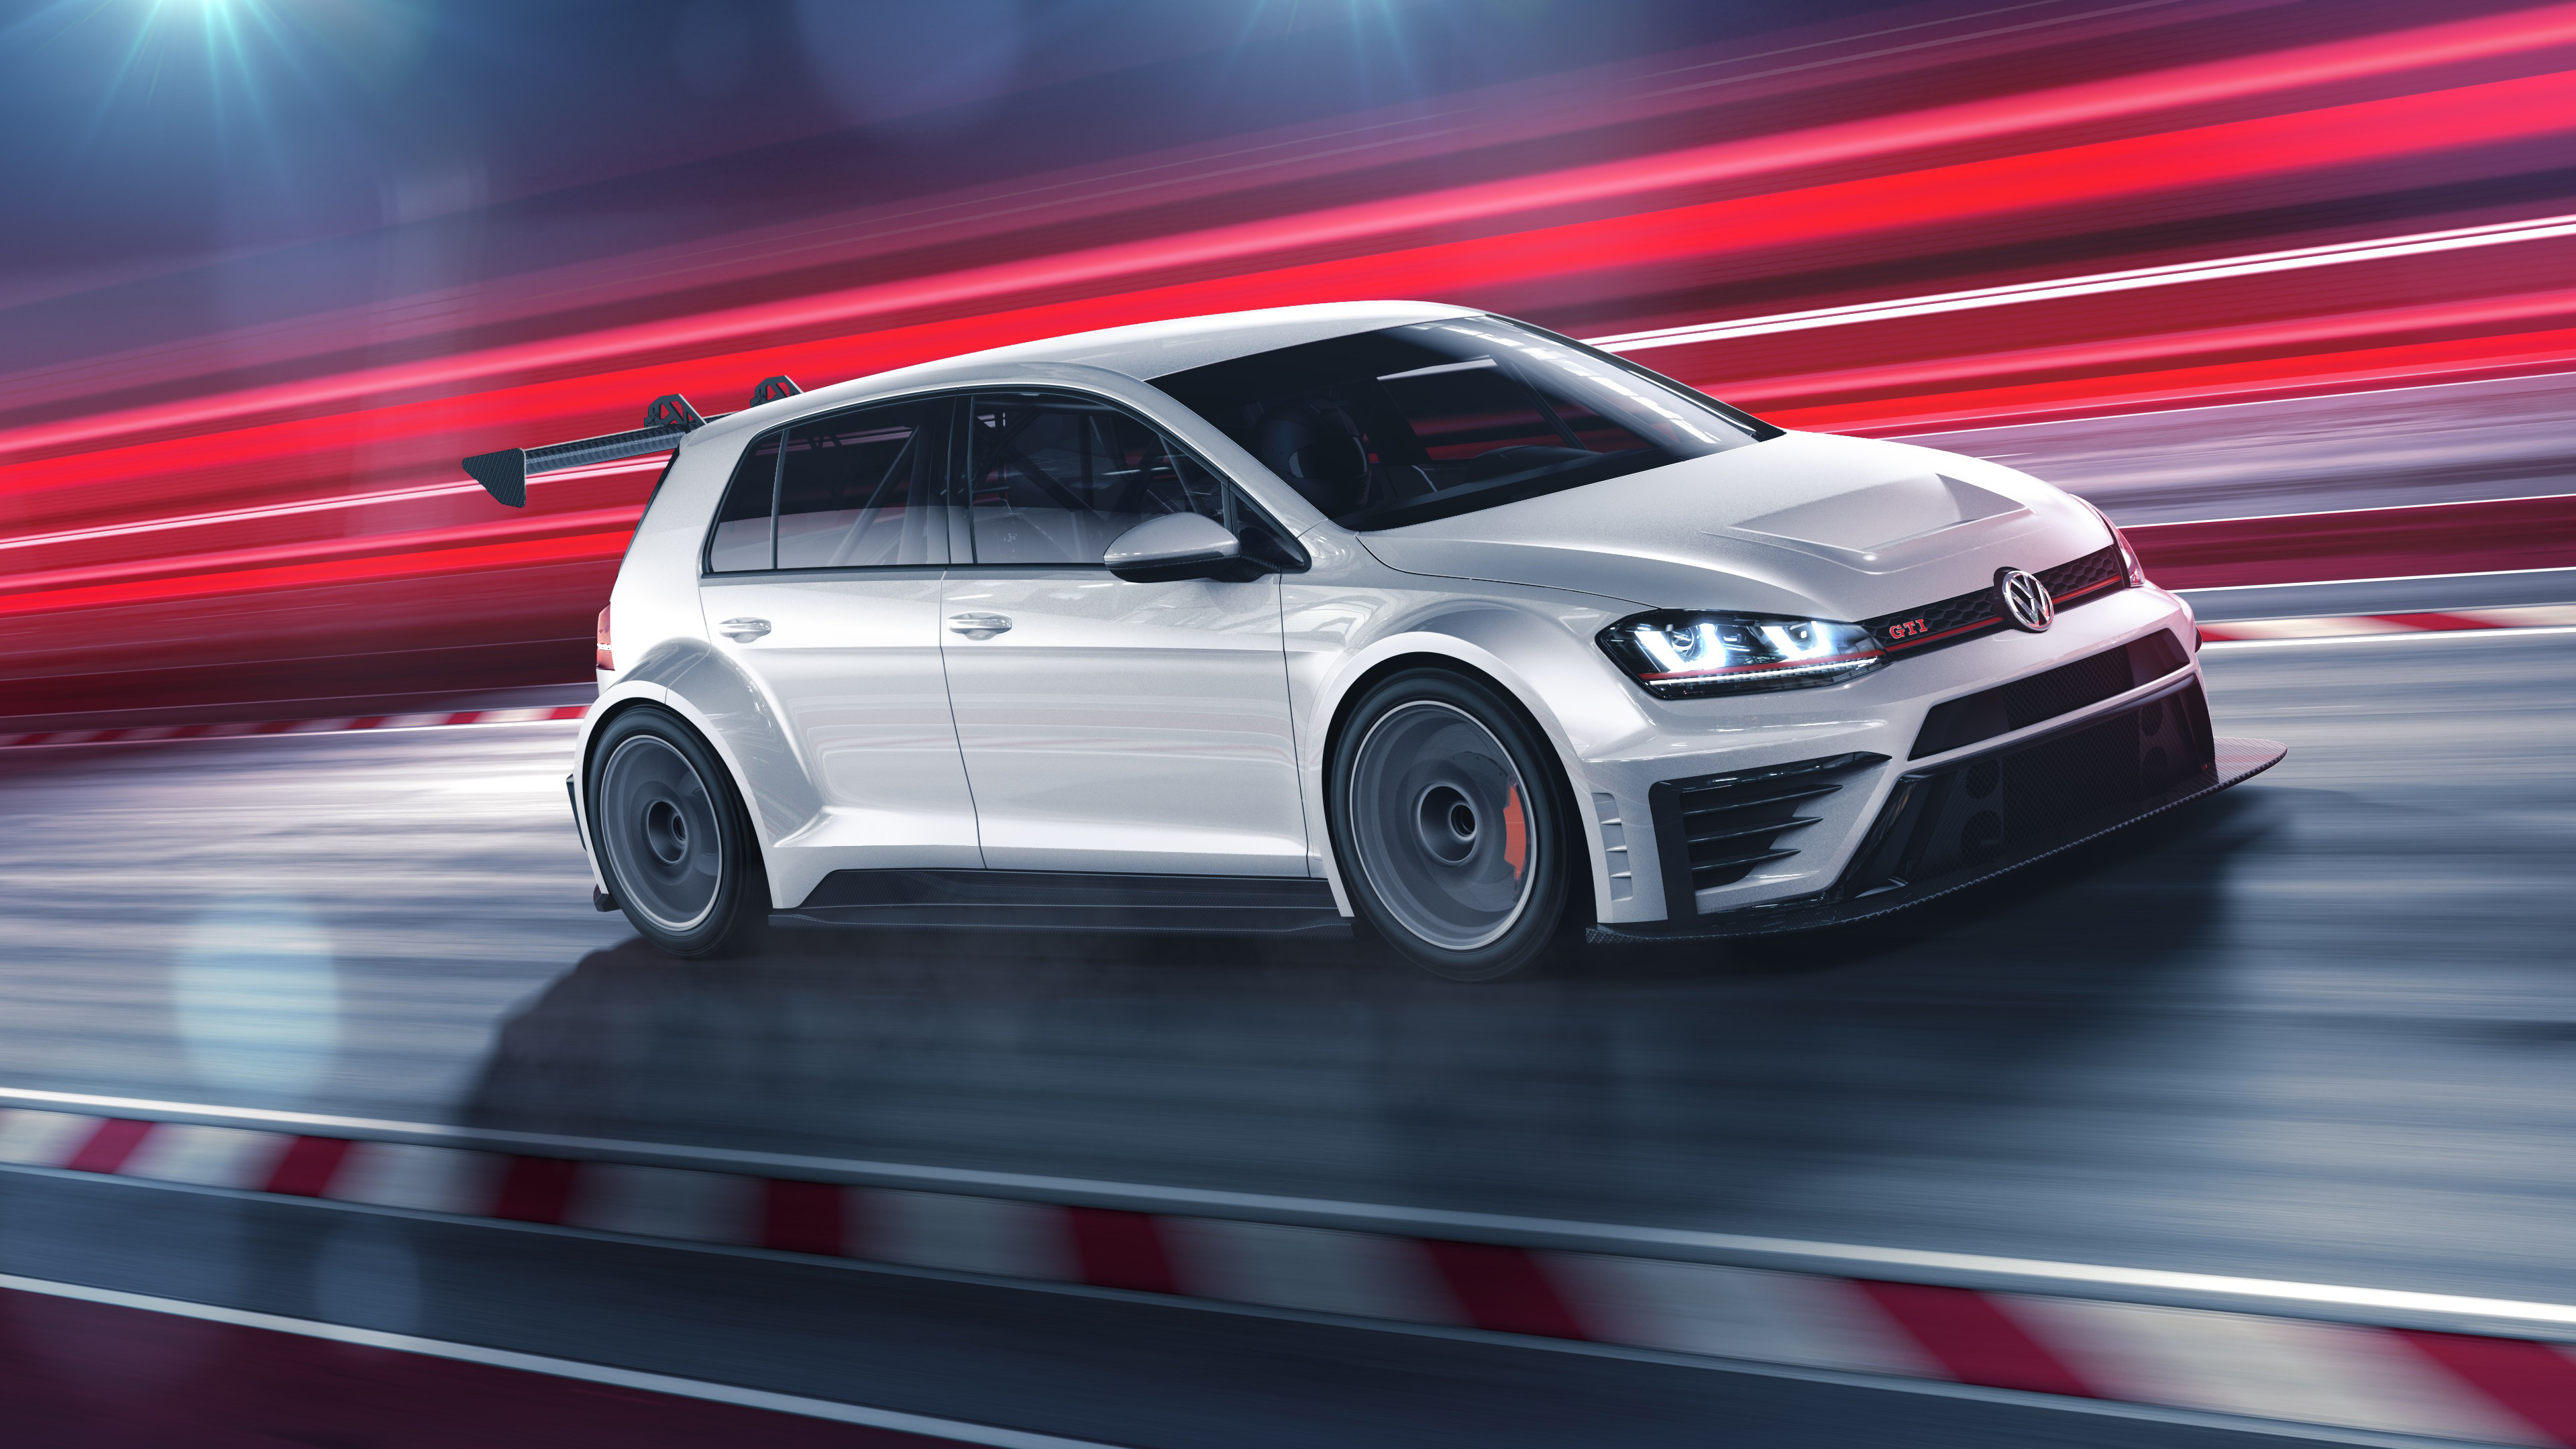 Volkswagen Golf GTi TCR 2016 4K Wallpaper